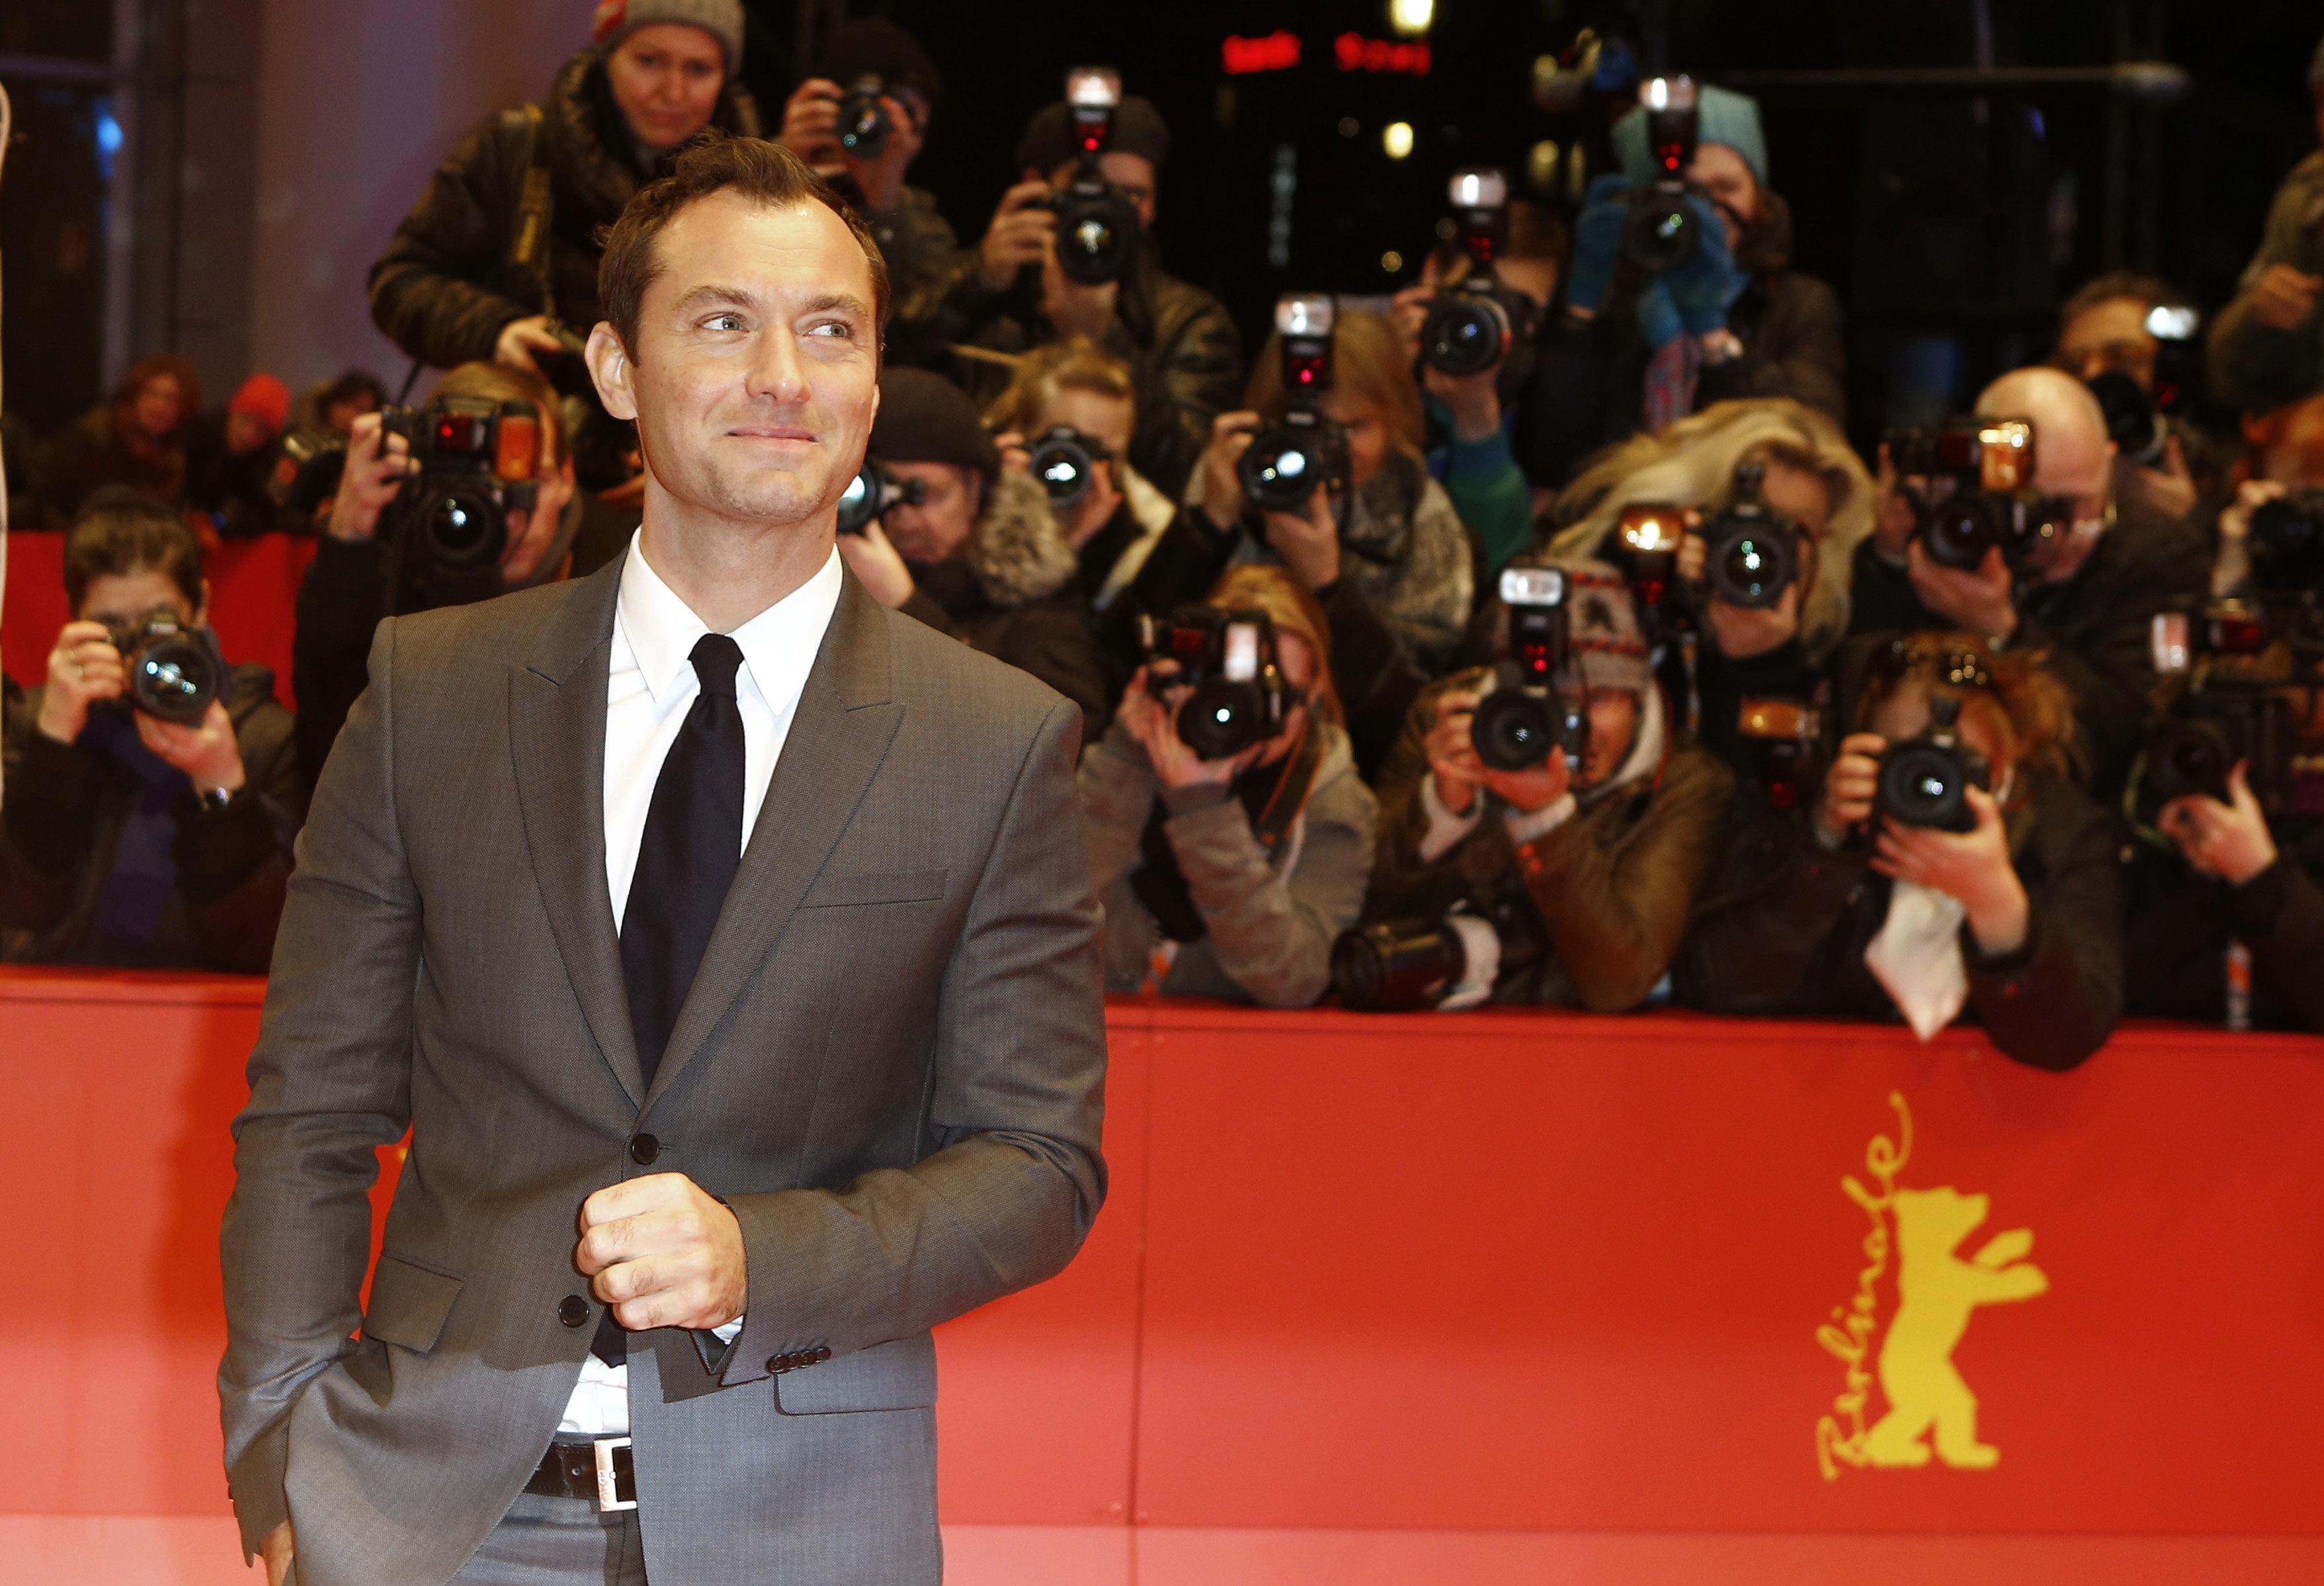 Actor Jude Law poses for photographers upon arrival at the red carpet of the film 'Genius' during the 2016 Berlinale Film Festival in Berlin